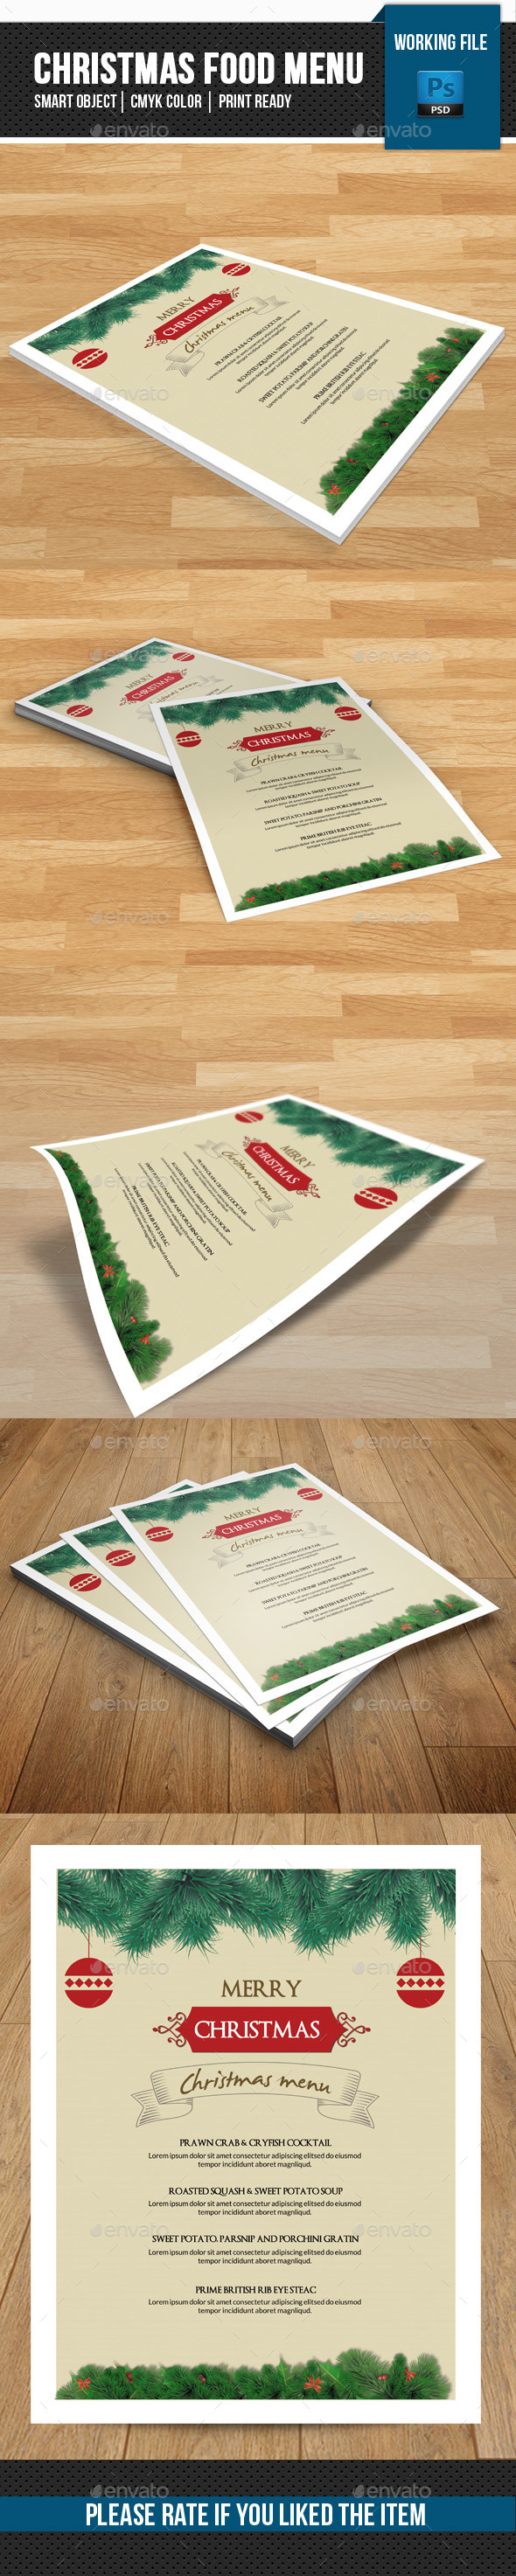 Christmas Food Menu-V03 - Food Menus Print Templates